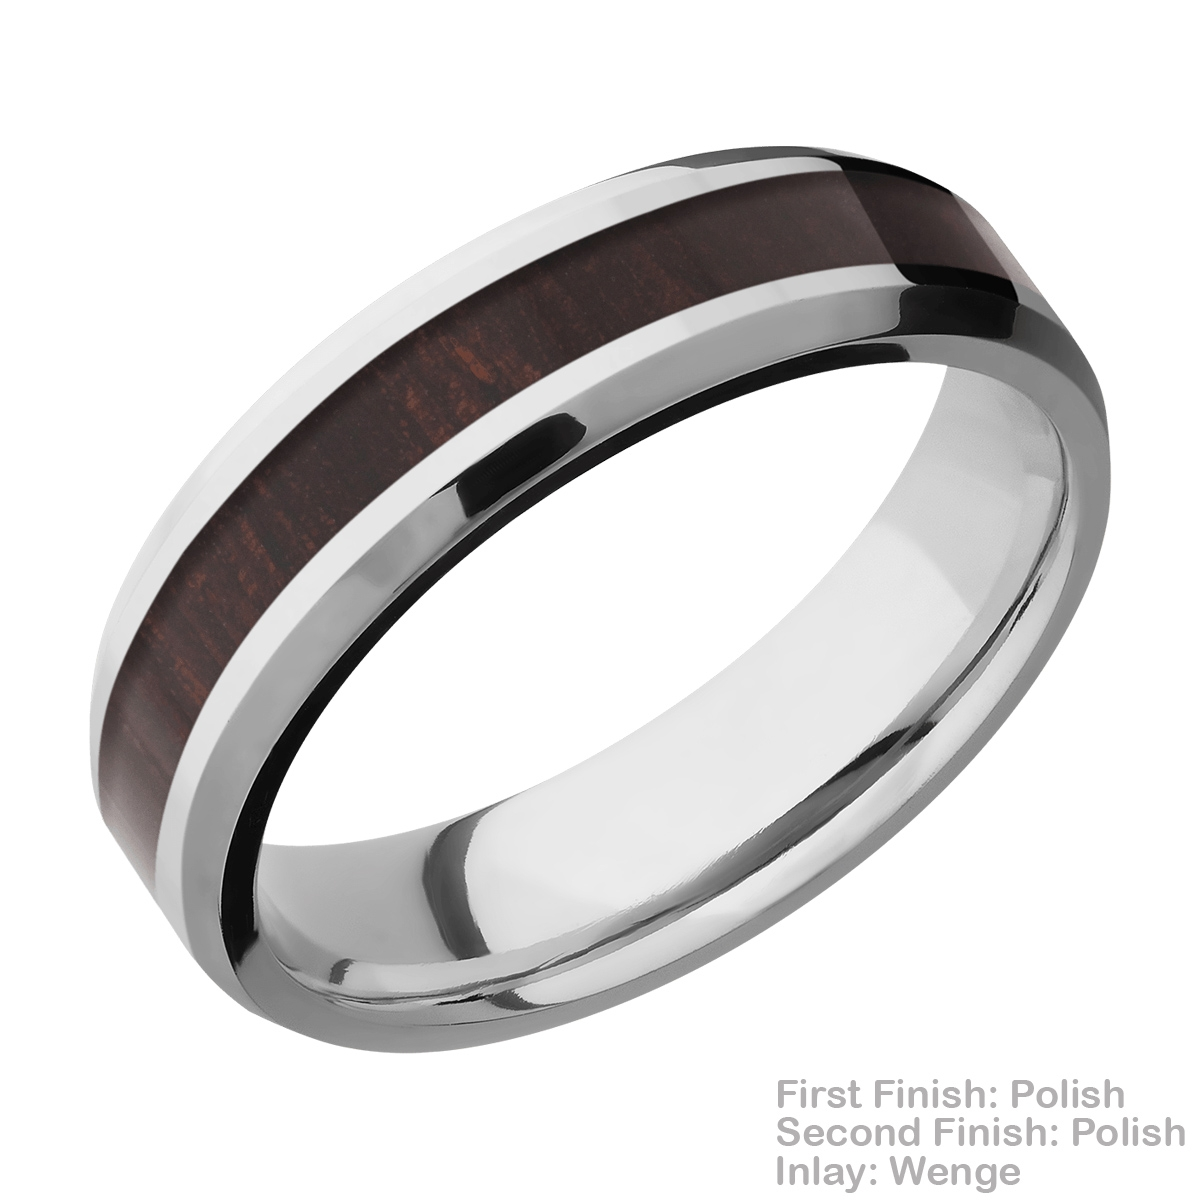 Lashbrook CC6B13(NS)/HARDWOOD Cobalt Chrome Wedding Ring or Band Alternative View 13